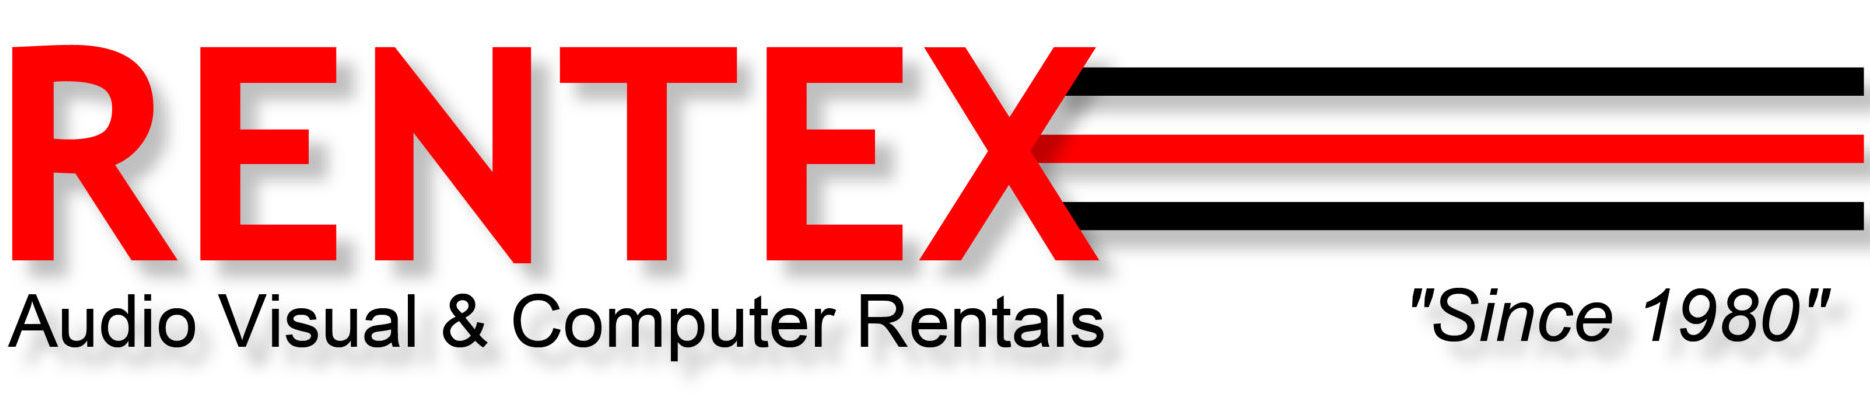 cropped-Rentex-Logo-with-drop-shadow.jpg